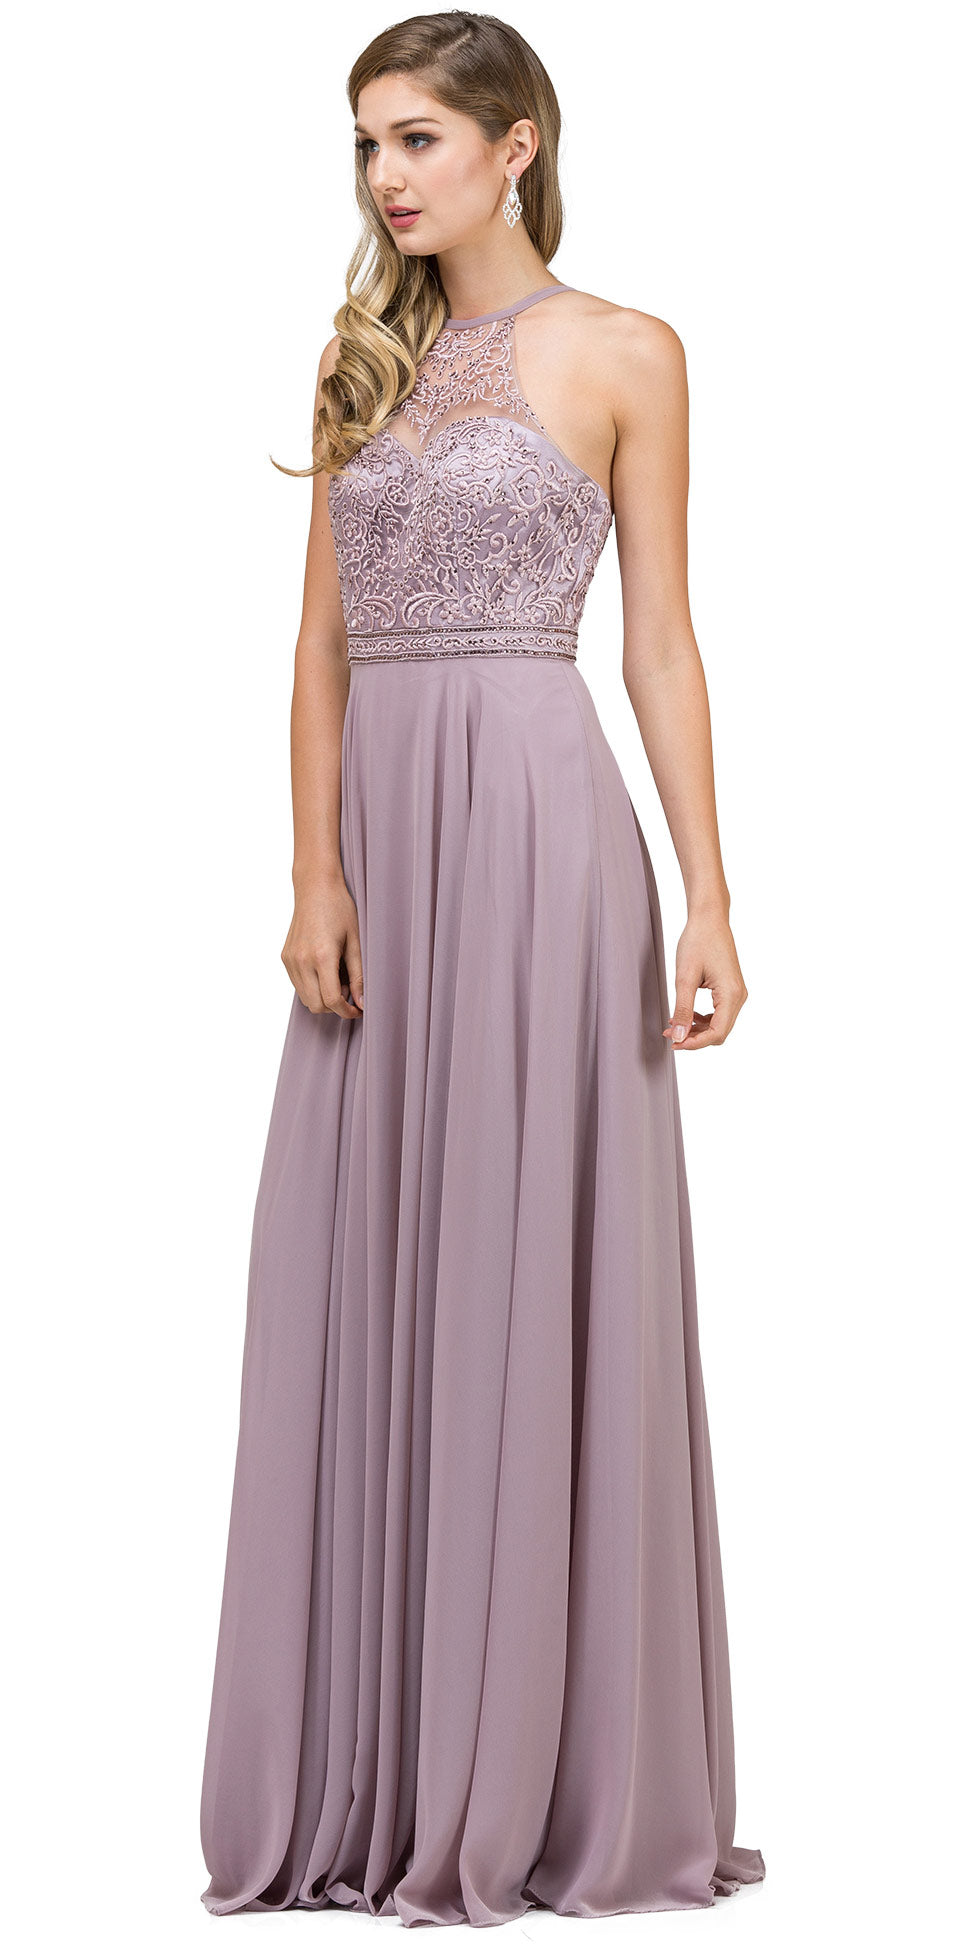 Main image of Embroidered Bodice High Neck Long Chiffon Prom Formal Dress